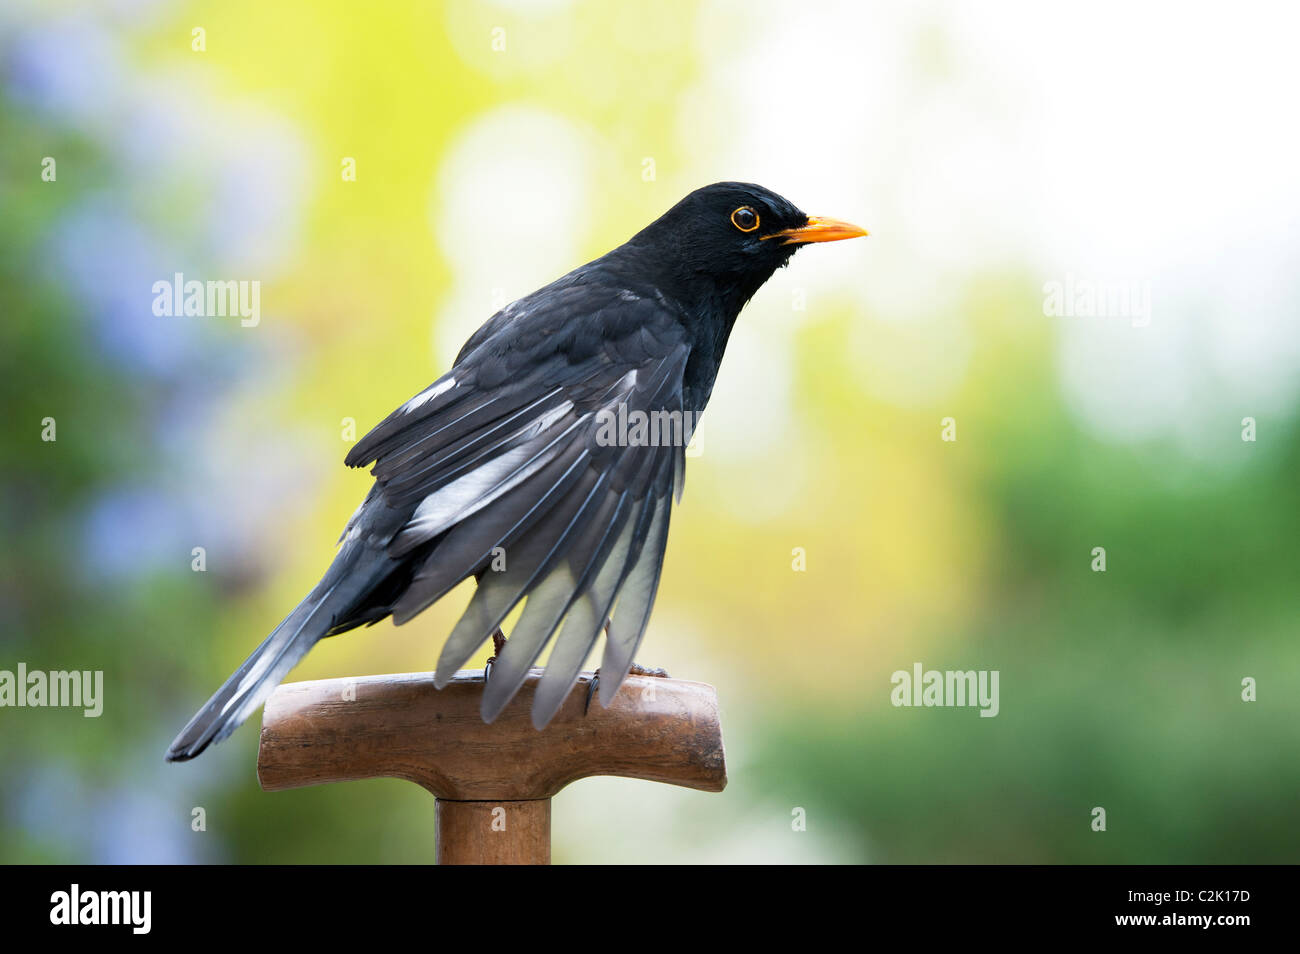 Blackbird on a wooden garden fork handle - Stock Image